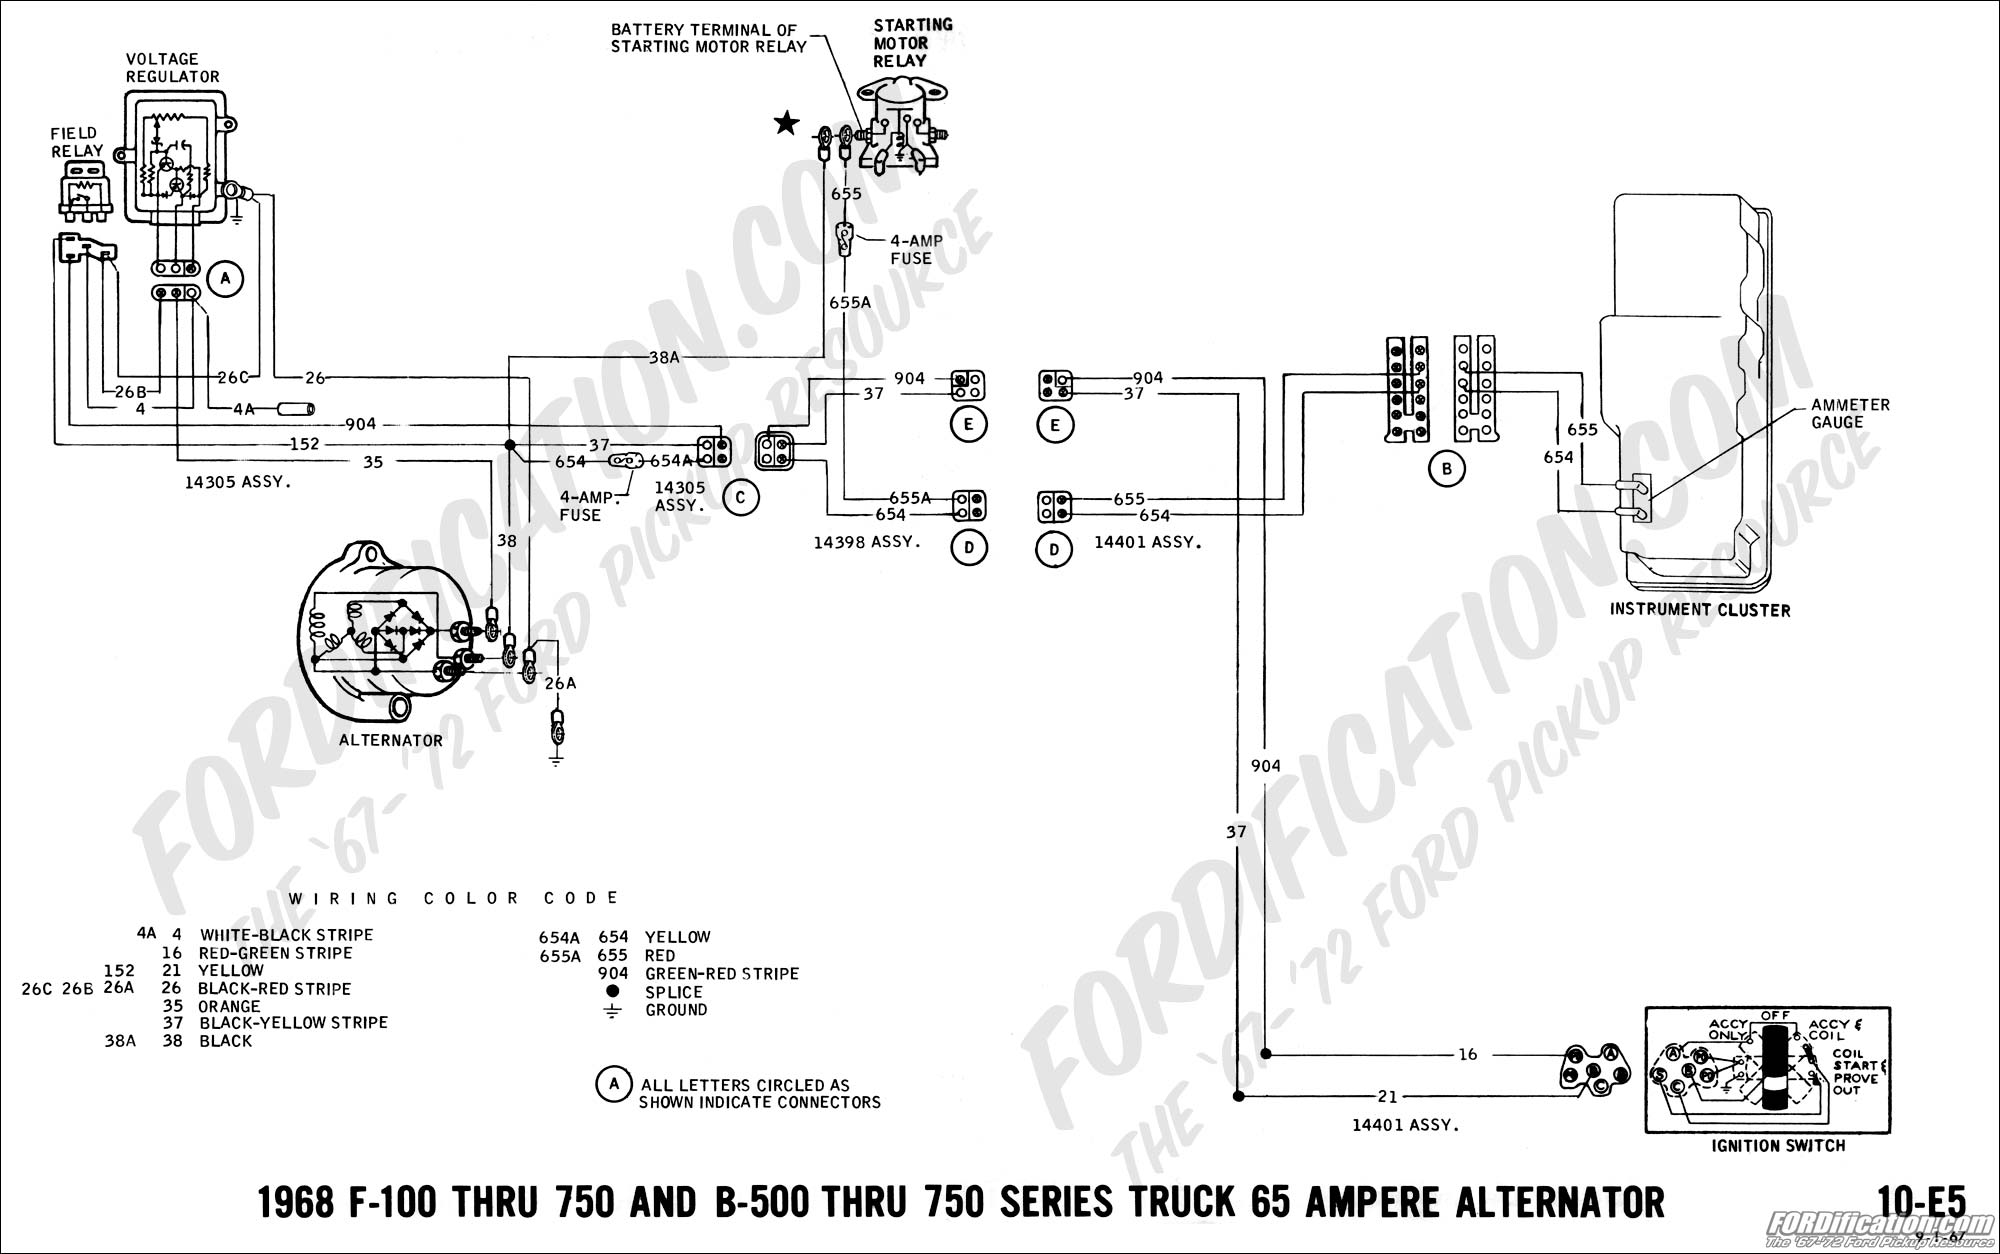 68 07 ford truck technical drawings and schematics section h wiring 1965 ford truck wiring diagram at nearapp.co